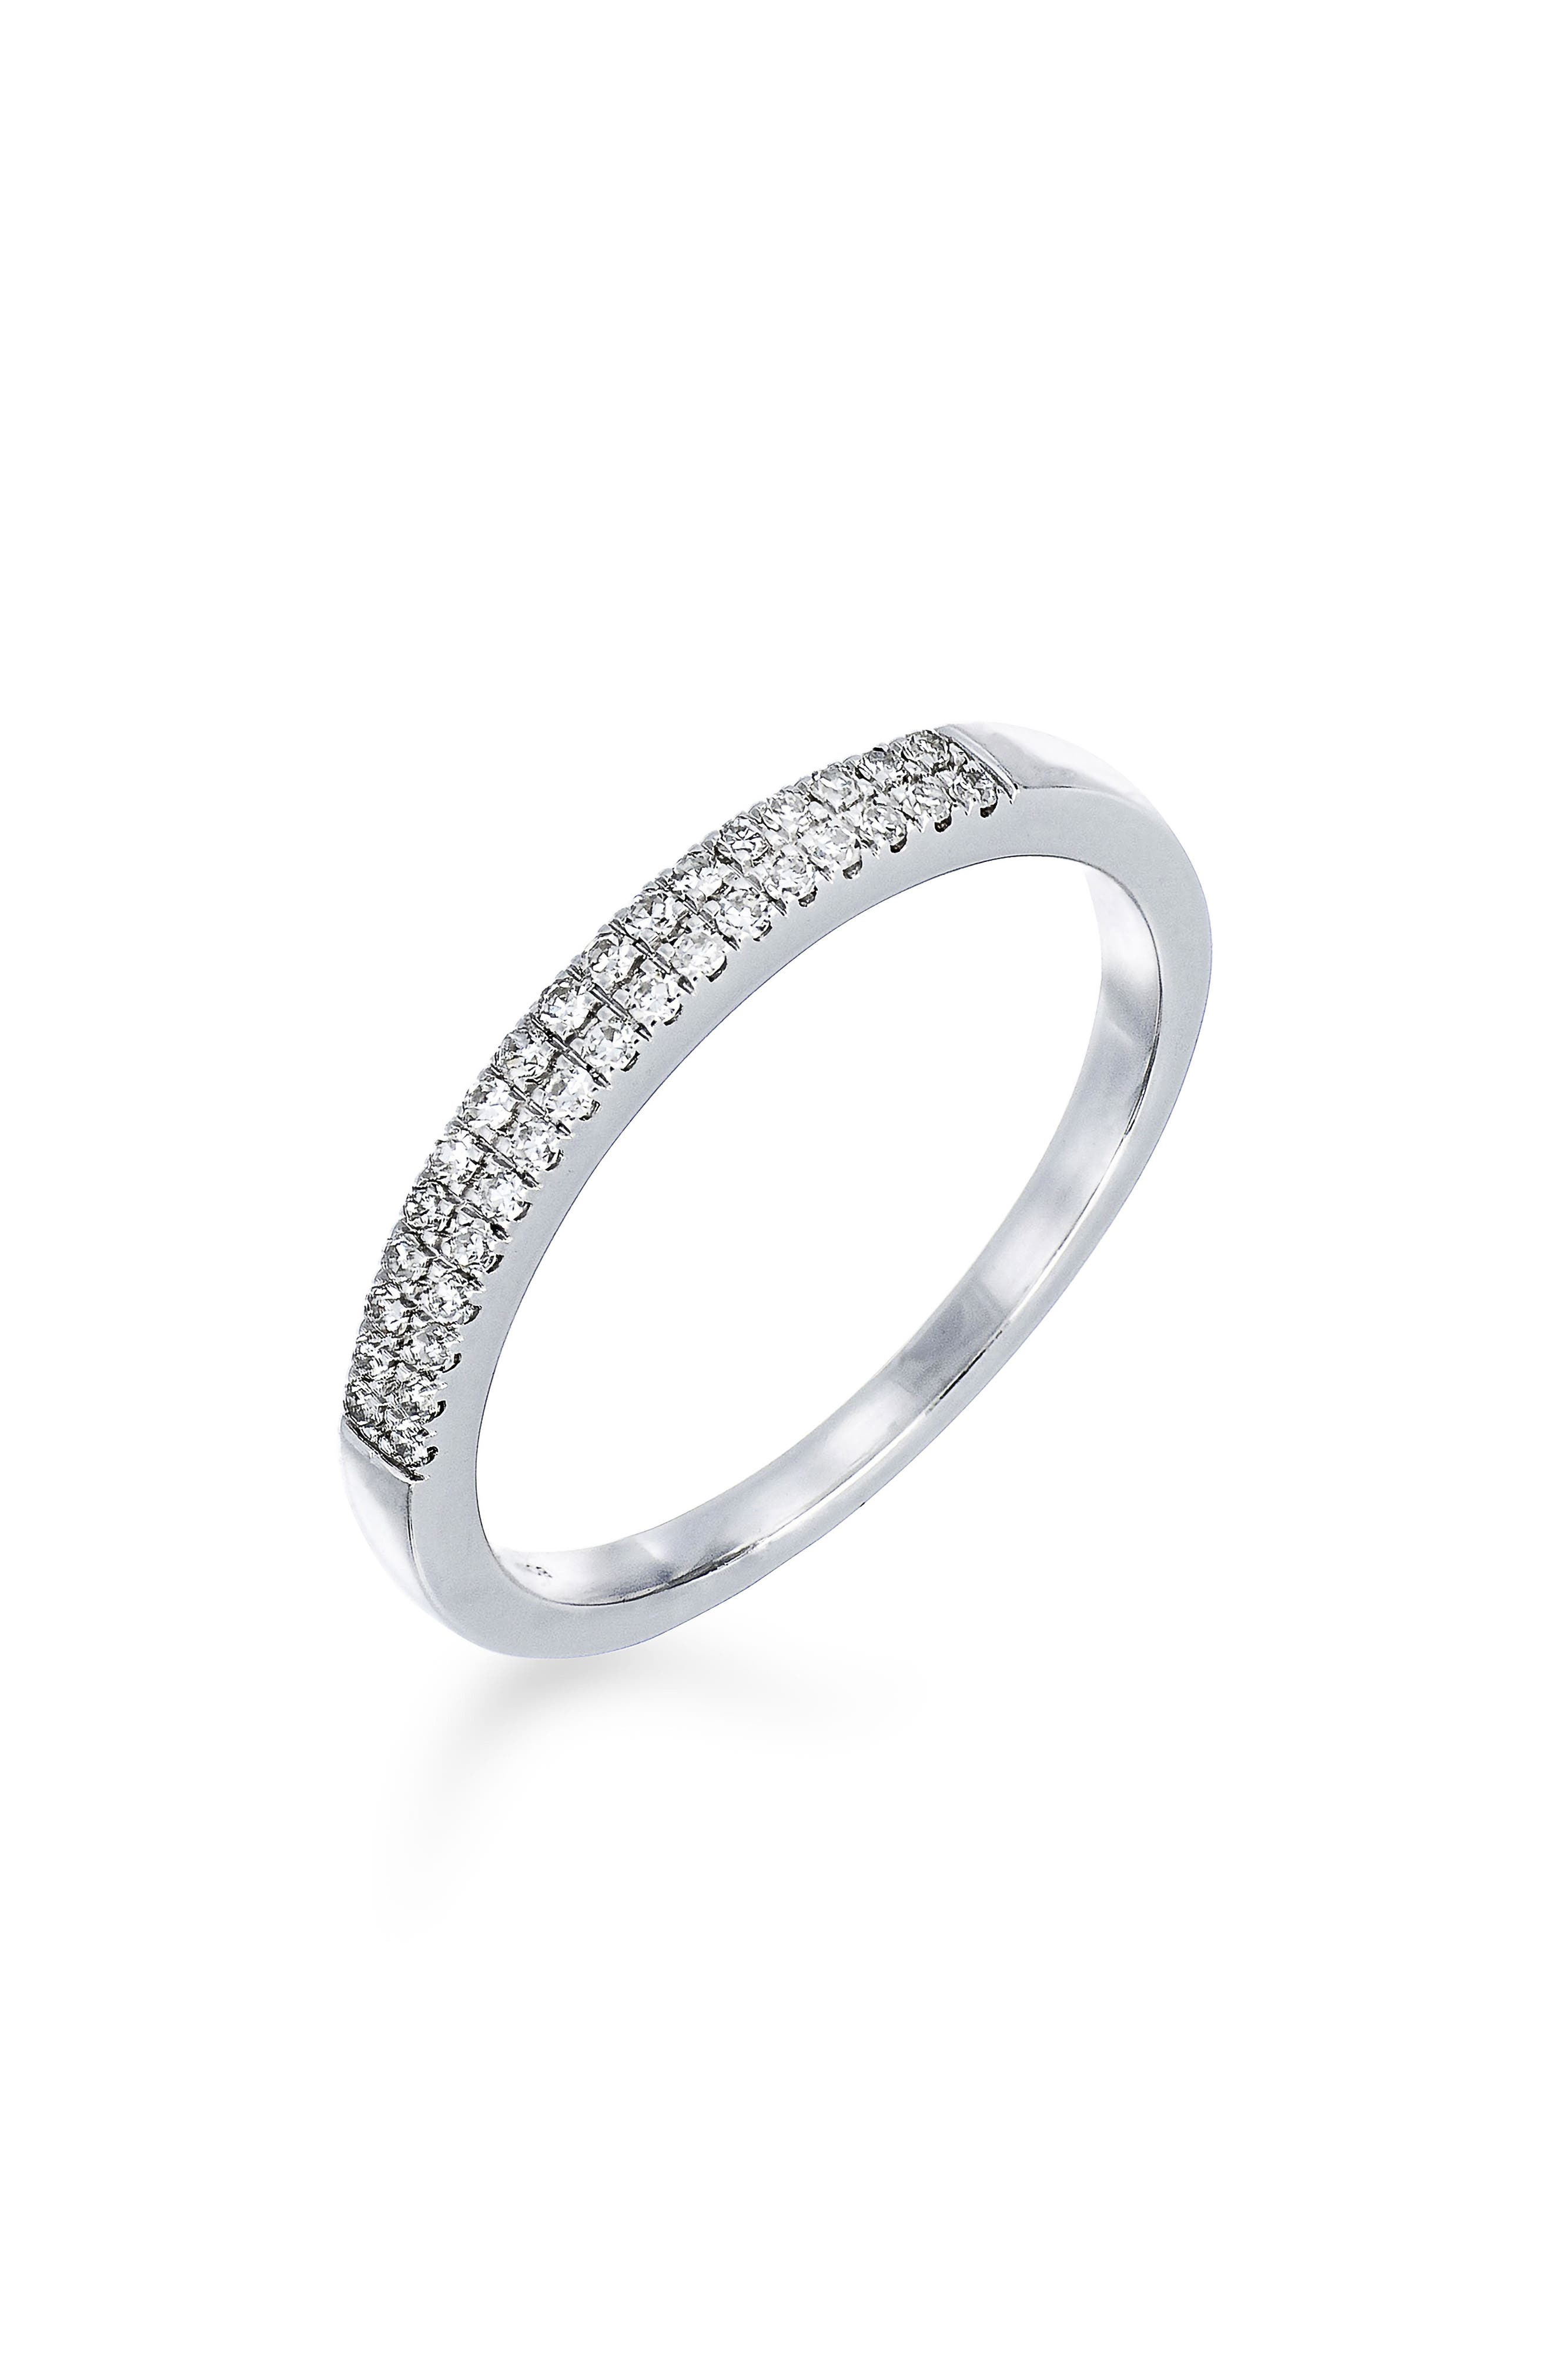 Carrière Double Row Diamond Stack Ring,                             Main thumbnail 1, color,                             Sterling Silver/ Diamond